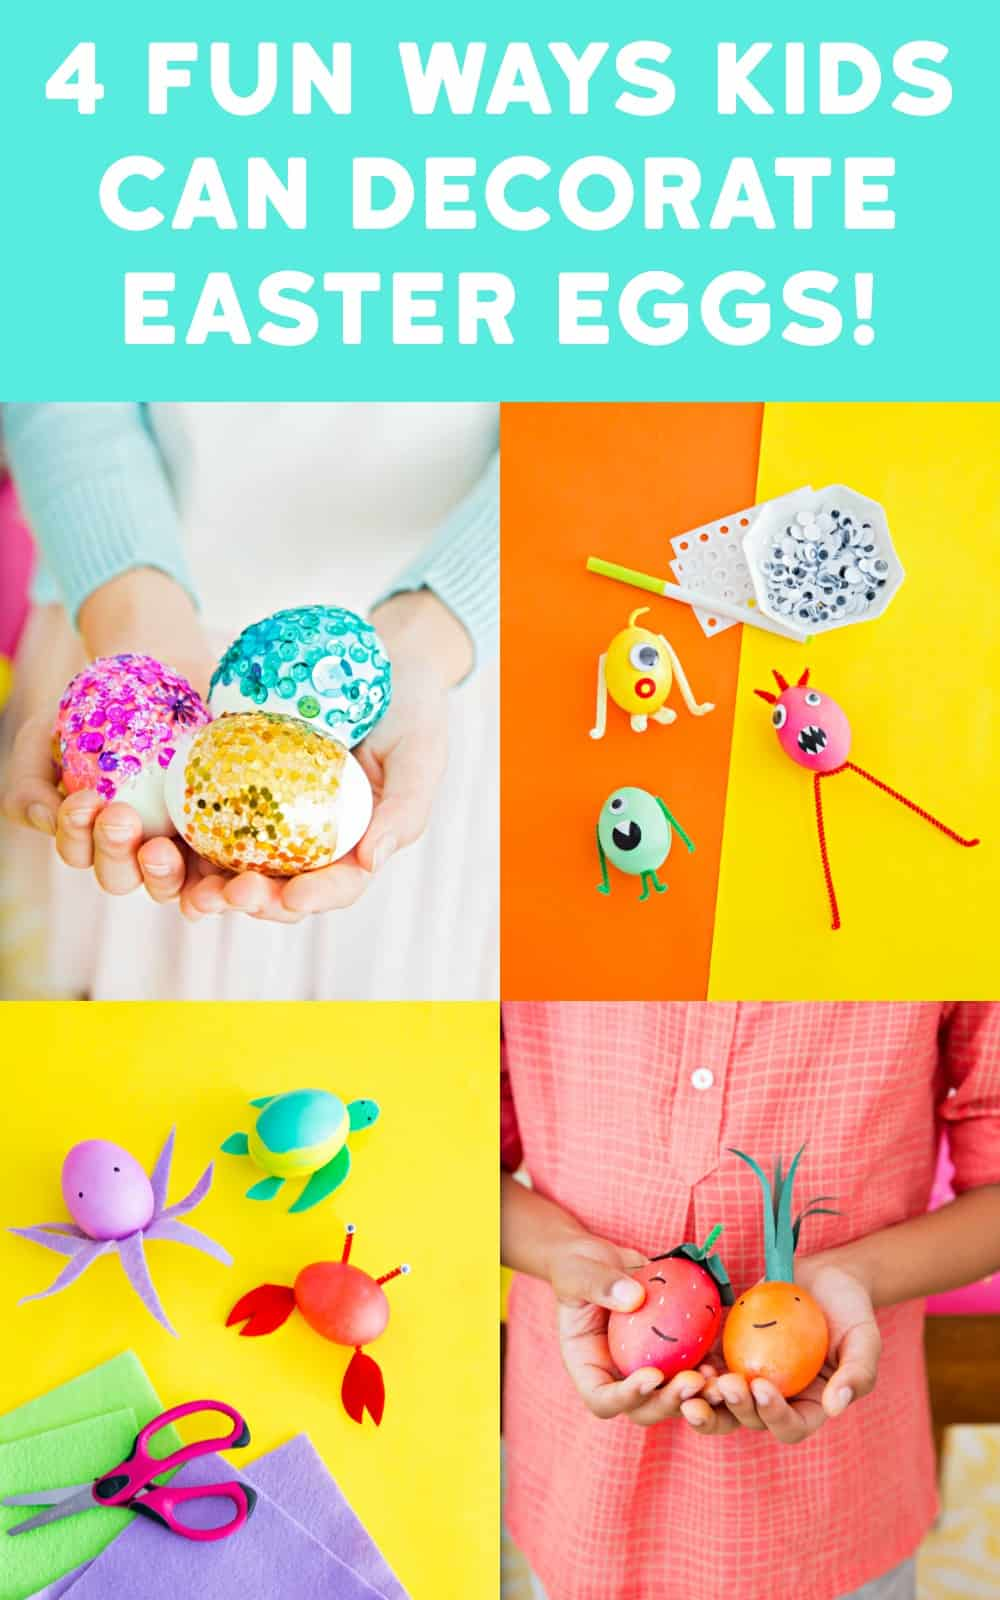 Here are four fun and colorful ways to decorate Easter eggs that kids will love. Use these ideas for a holiday party - you'll love seeing their creations!